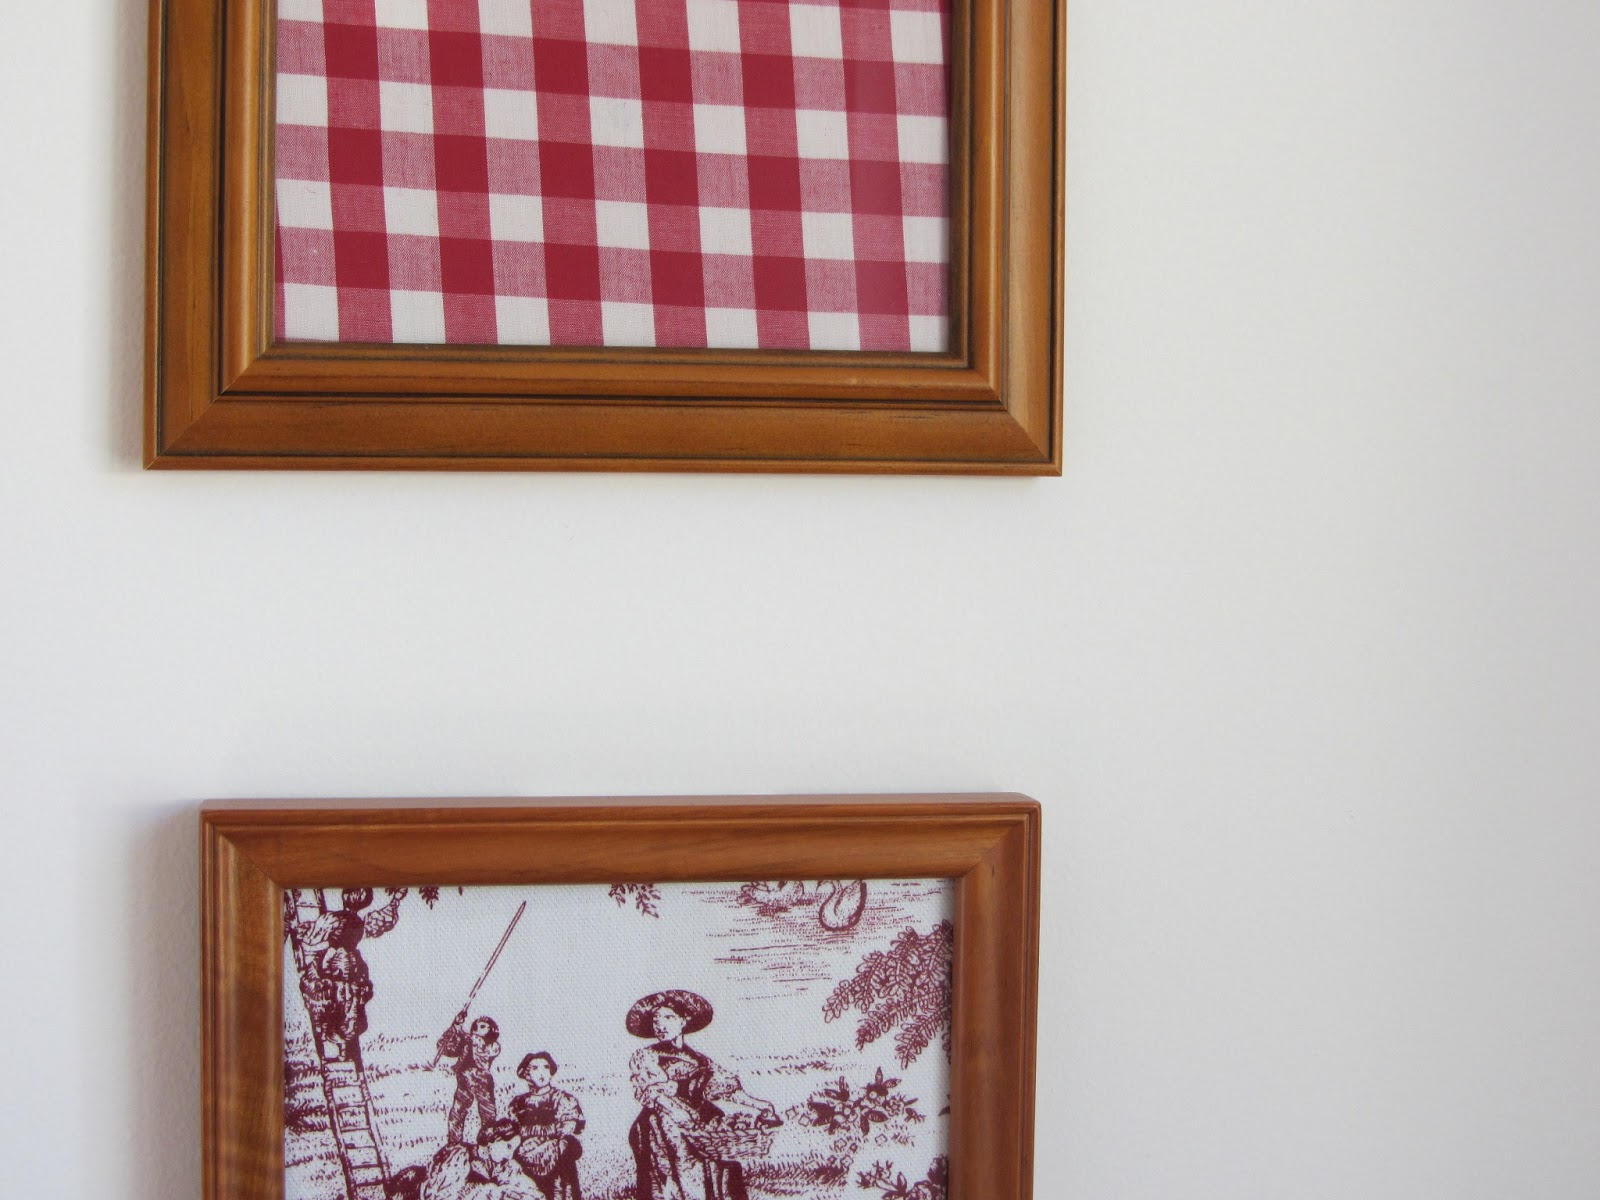 Thom Haus Handmade Cheap Decorating With Fabric In Old Photo Frames